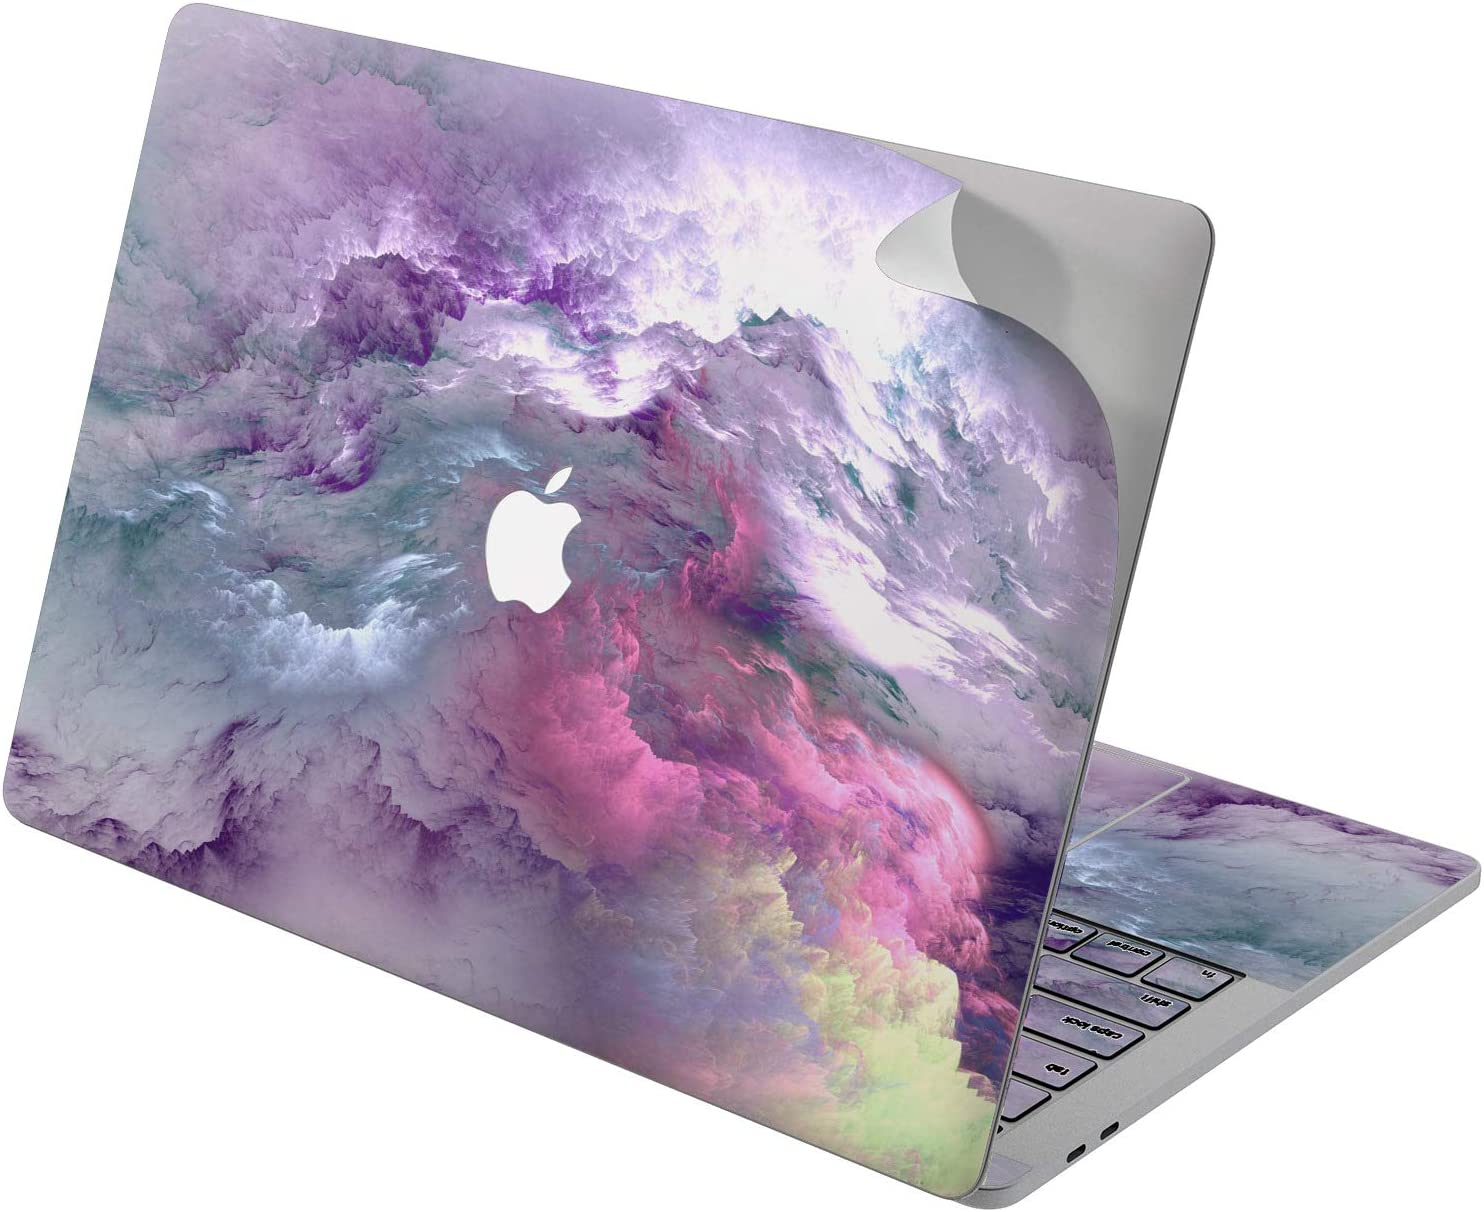 "Cavka Vinyl Decal Skin for Apple MacBook Pro 13"" 2019 15"" 2018 Air 13"" 2020 Retina 2015 Mac 11"" Mac 12"" Texture Pink Nature Laptop Purple Design Protective Sticker Cover Abstract Nice Print Paint Sky"